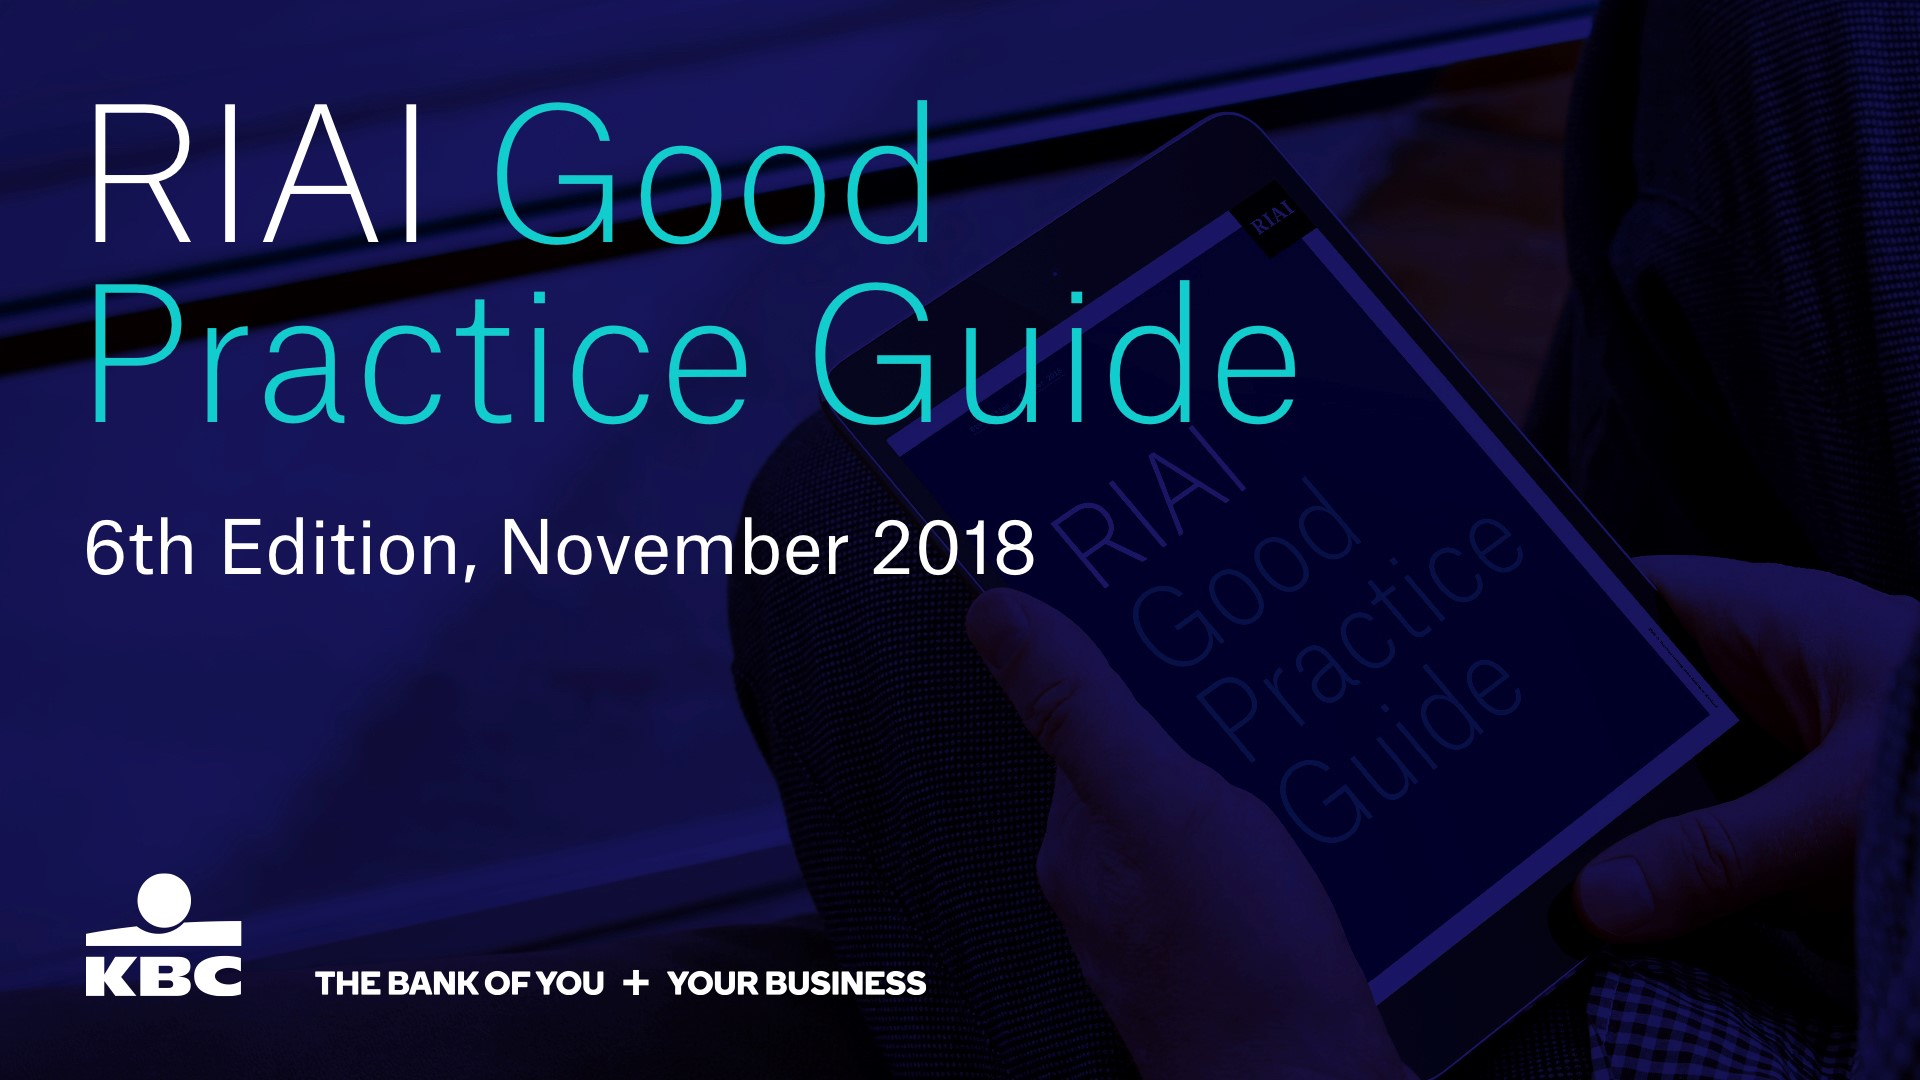 RIAI Good Practice Guide - 6 Edition 2018